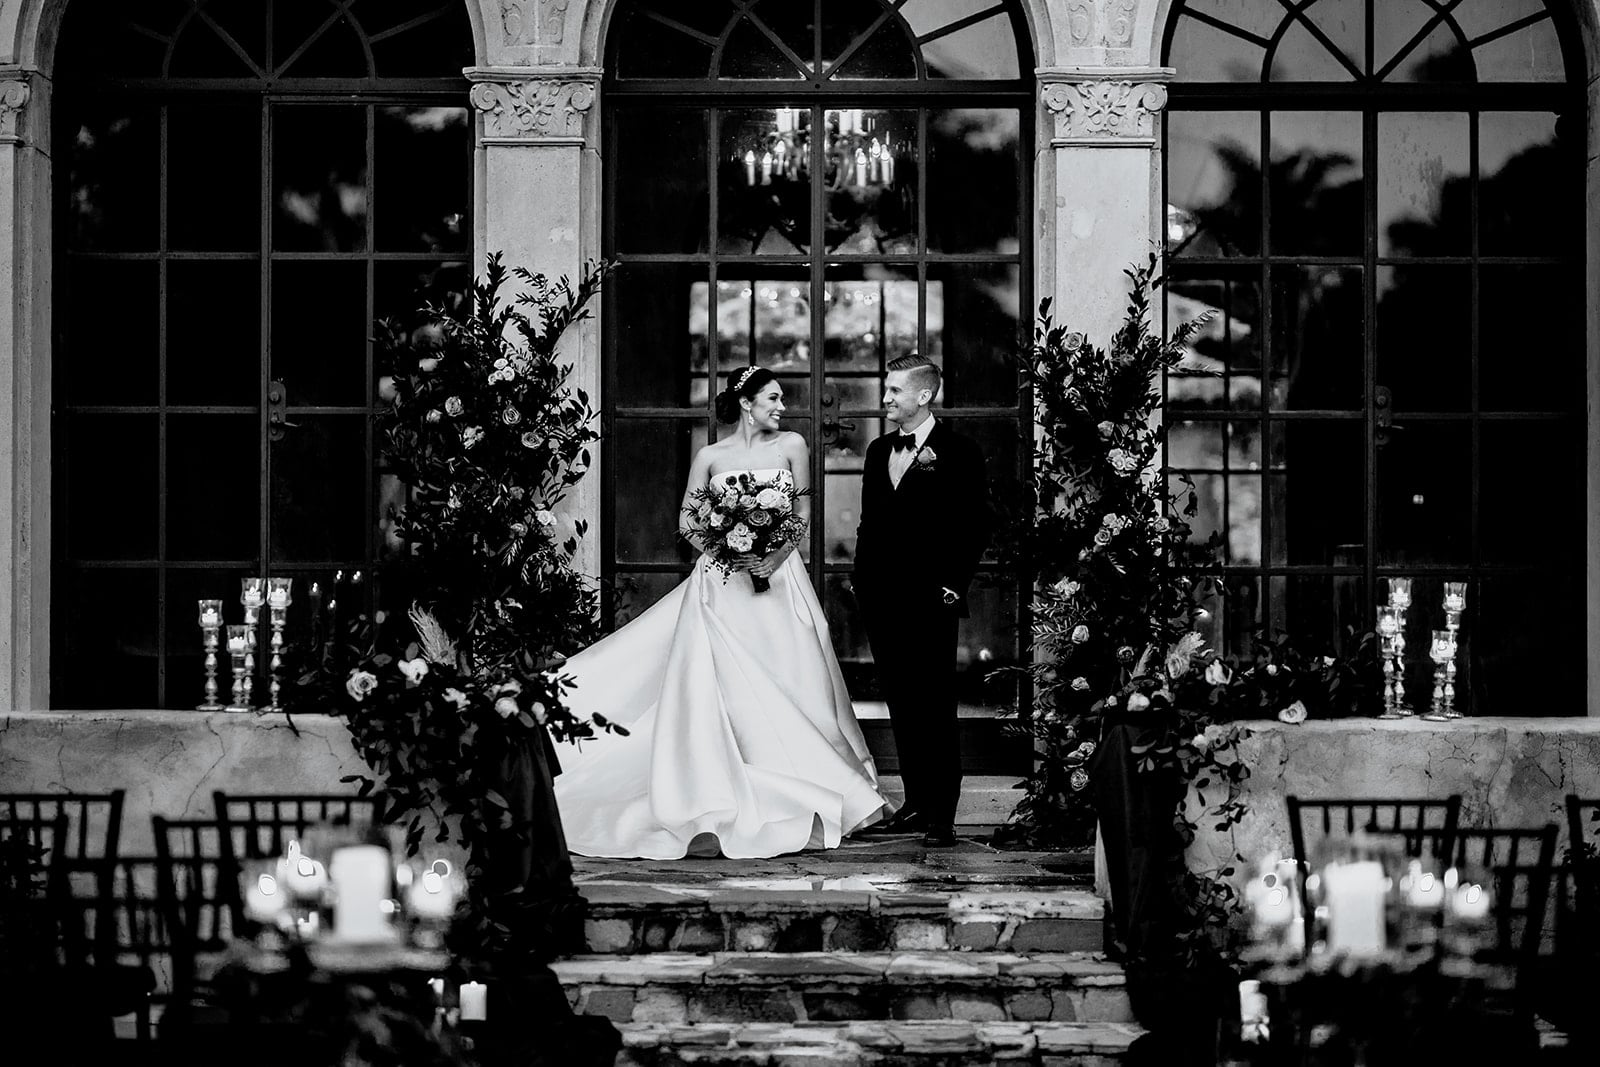 black and white image of couple in wedding day attire looking at each other standing facing the camera in their ceremony space decorated with floral arrangements